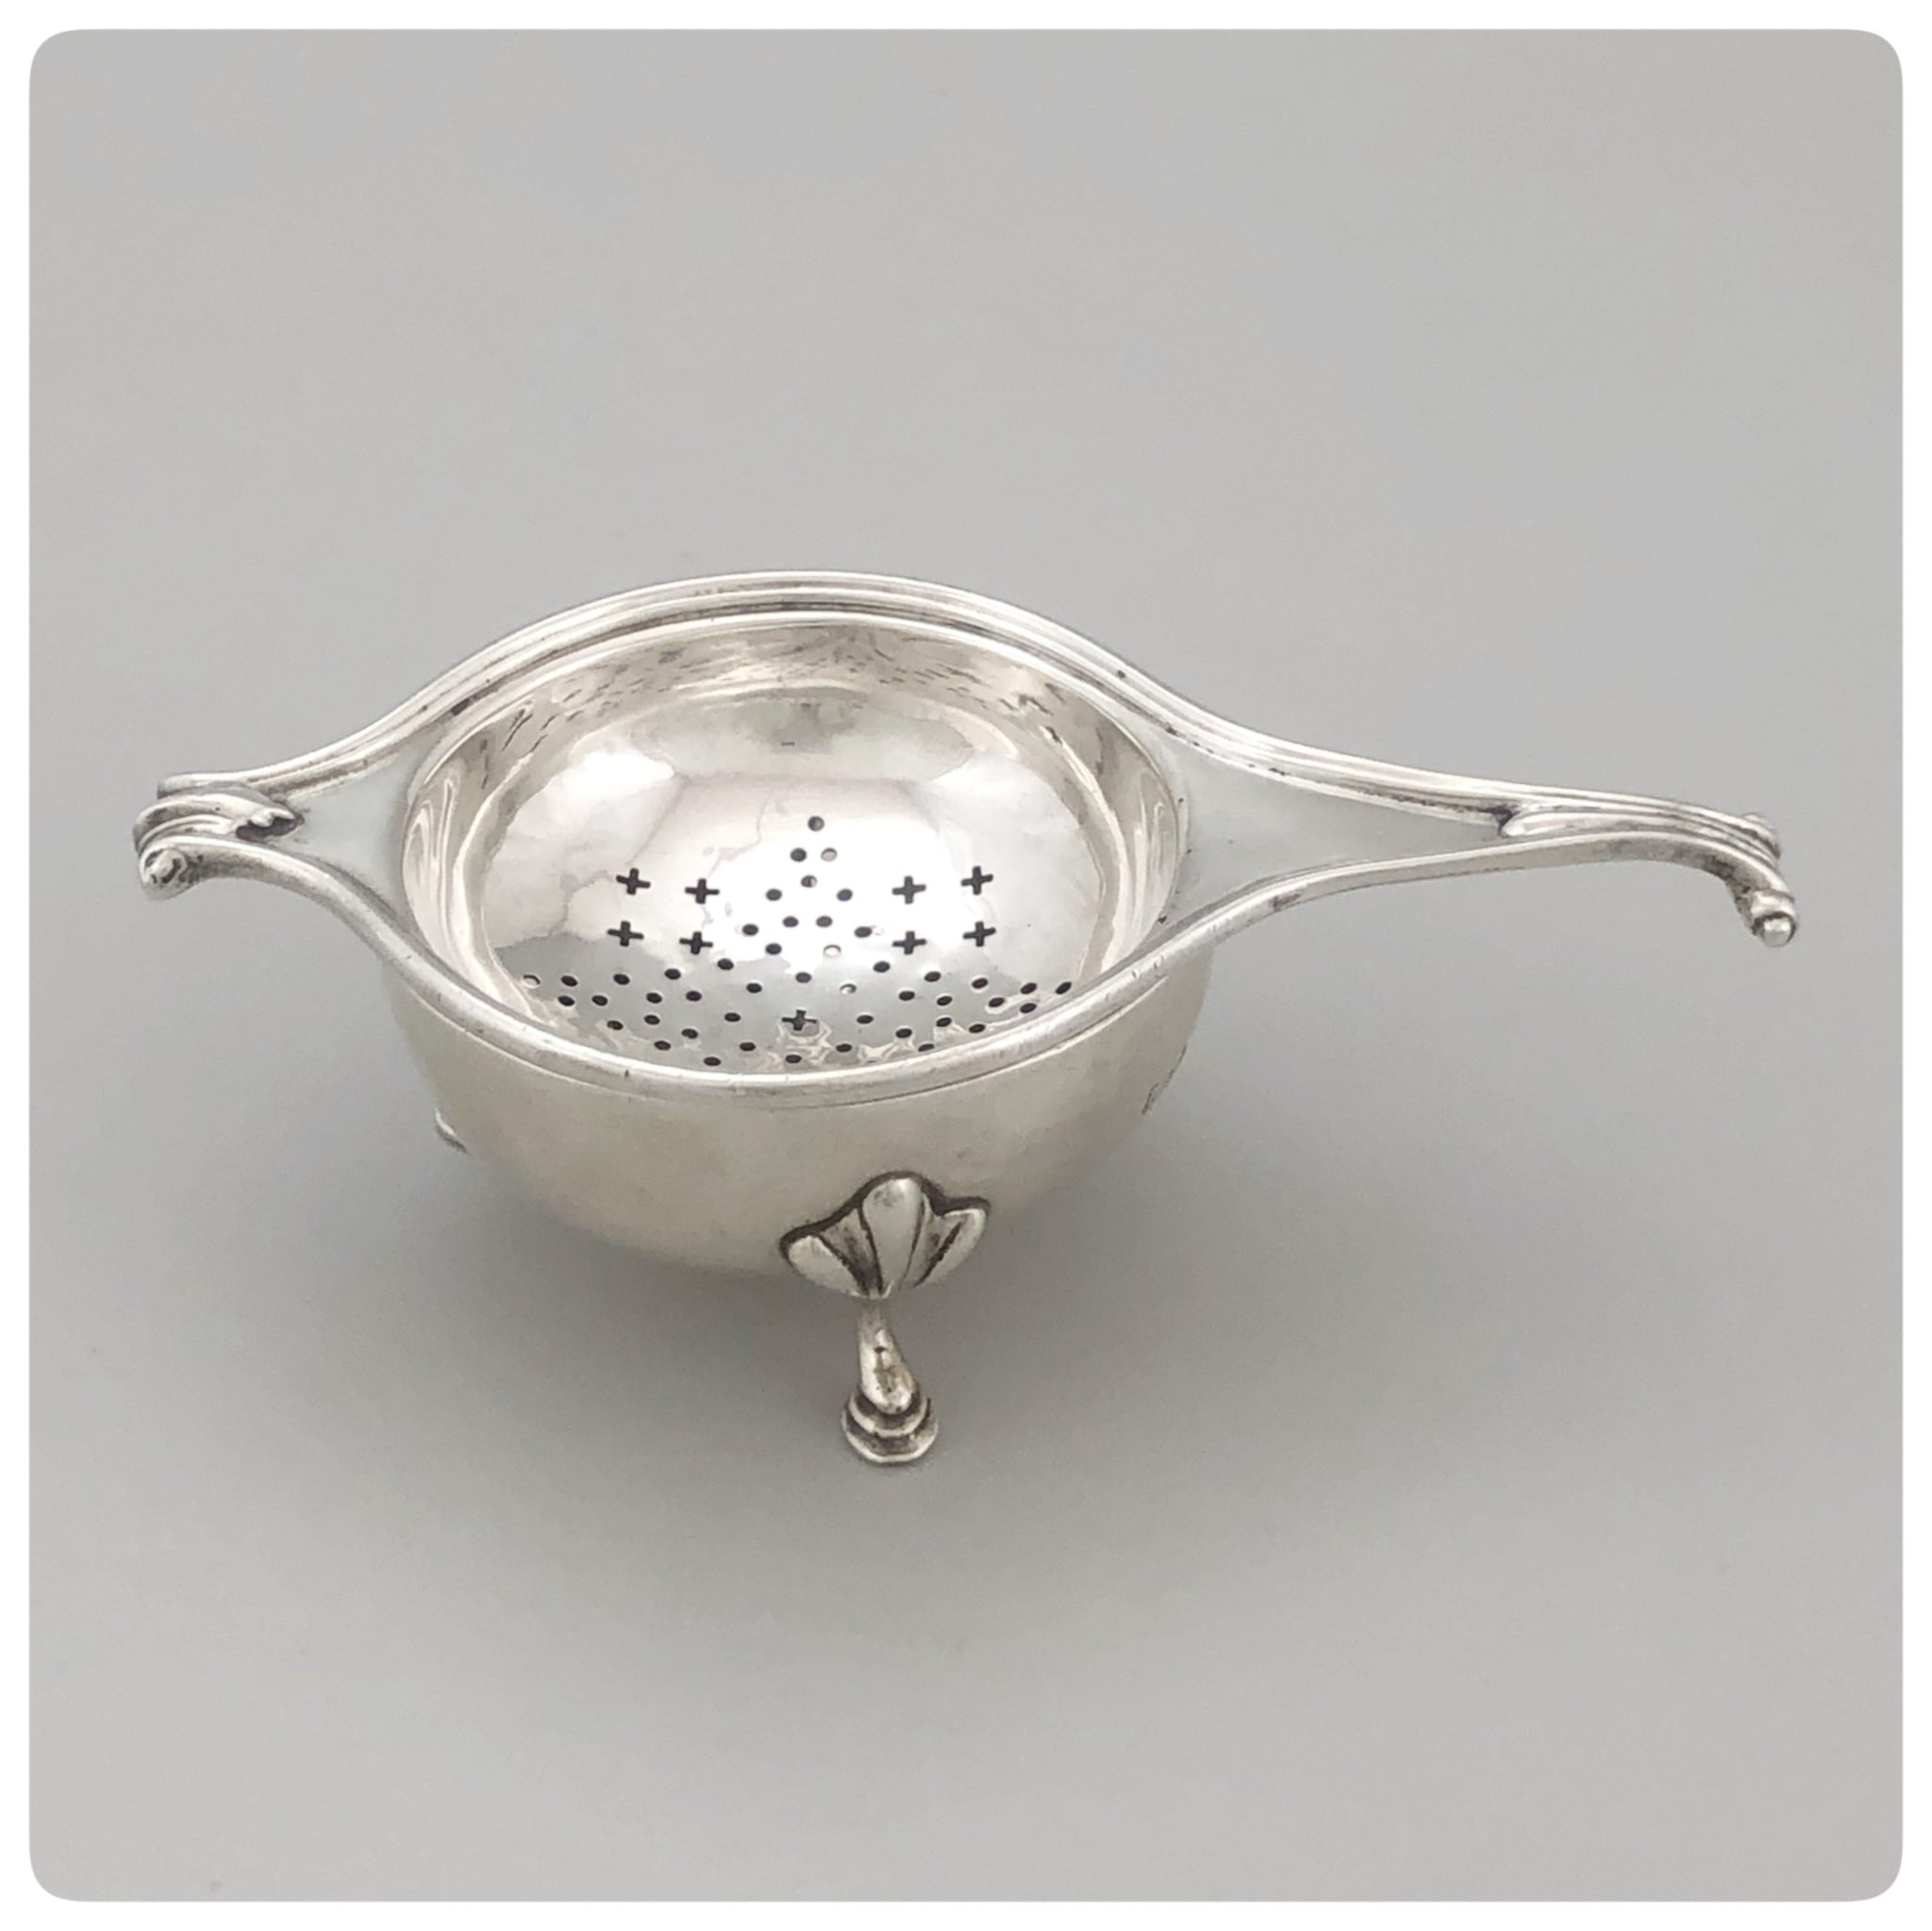 English Sterling Silver Tea Strainer and Stand, Lionel Alfred Crichton, London, 1927-1928